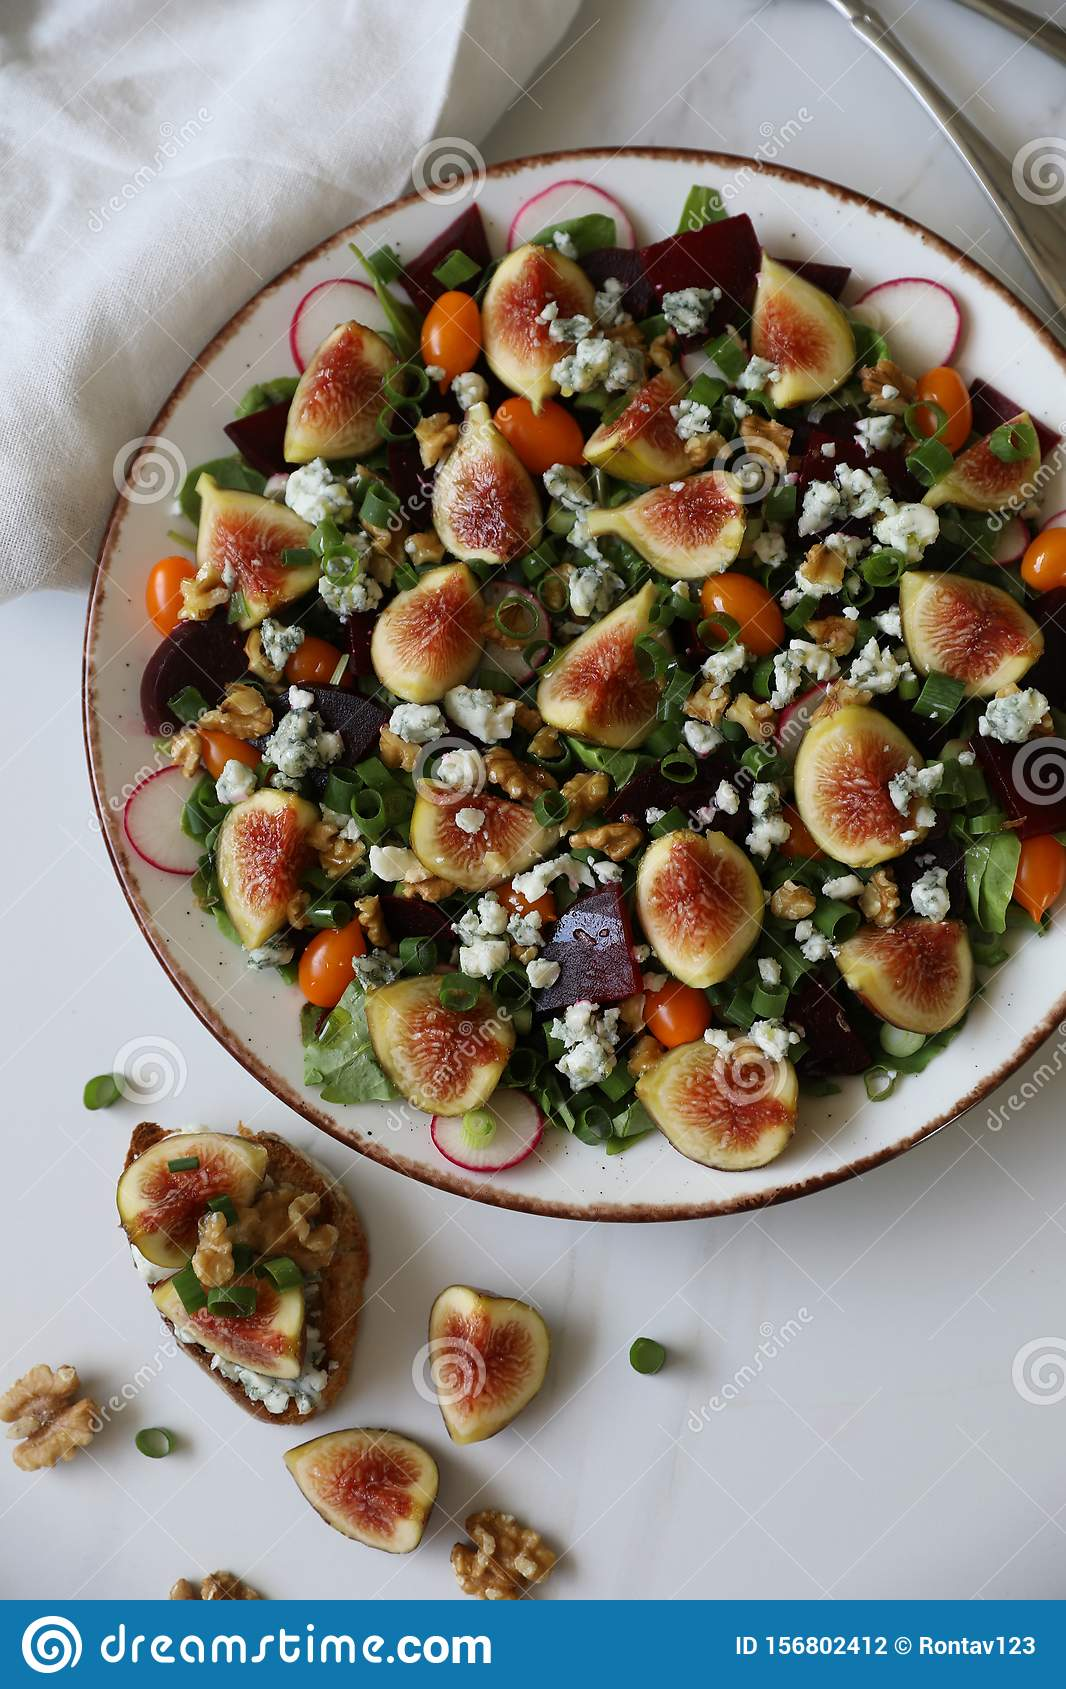 Top view of healthy and delicious fresh Figs,Gorgonzola cheese and beetroot salad